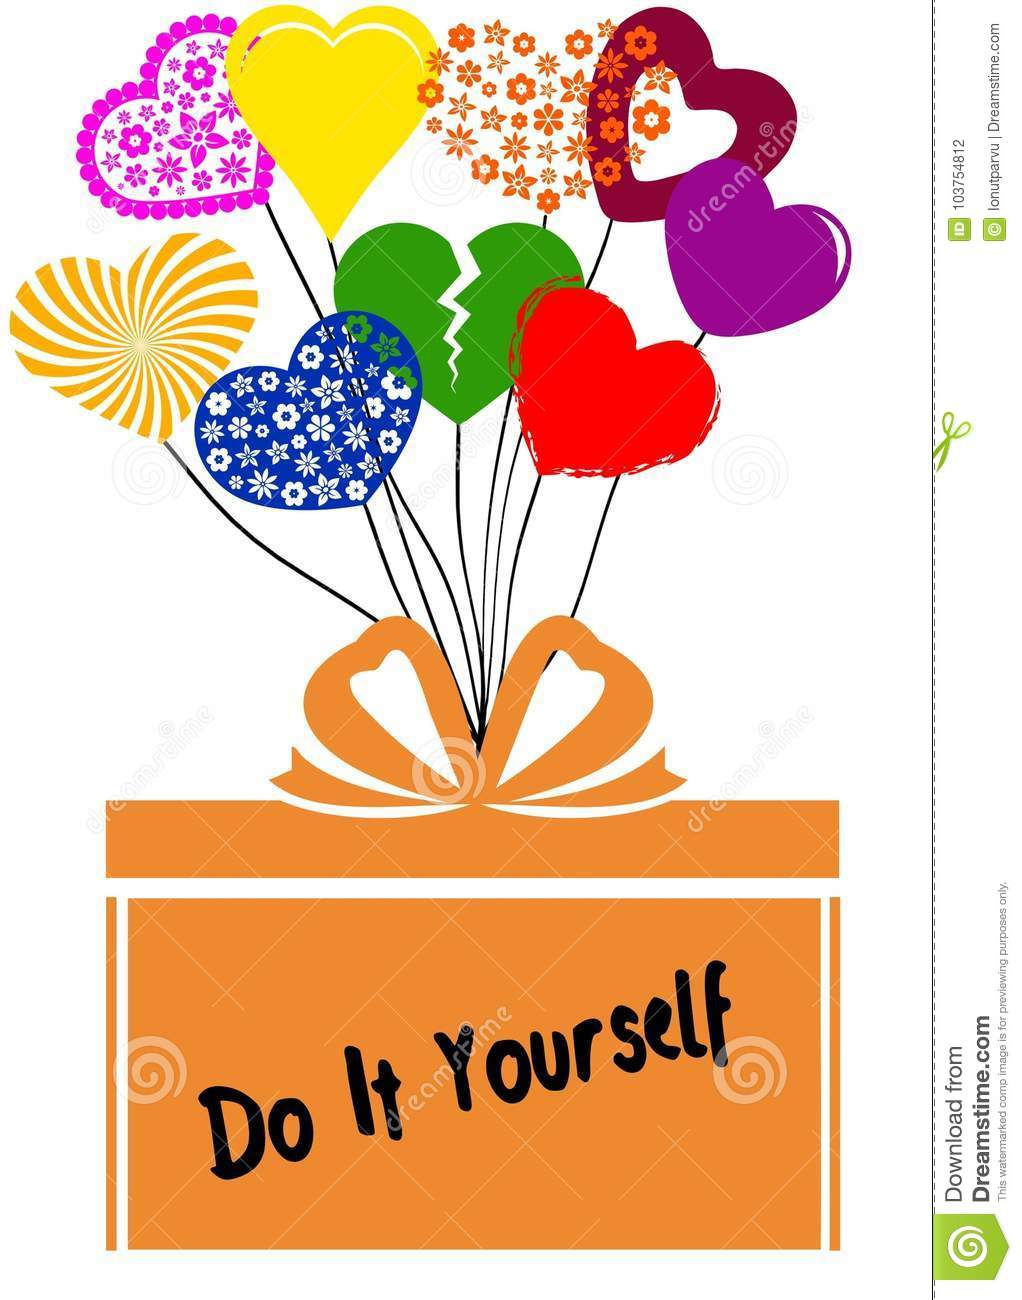 Do it yourself on gift box with multicoloured hearts stock download do it yourself on gift box with multicoloured hearts stock illustration illustration of announcement solutioingenieria Choice Image